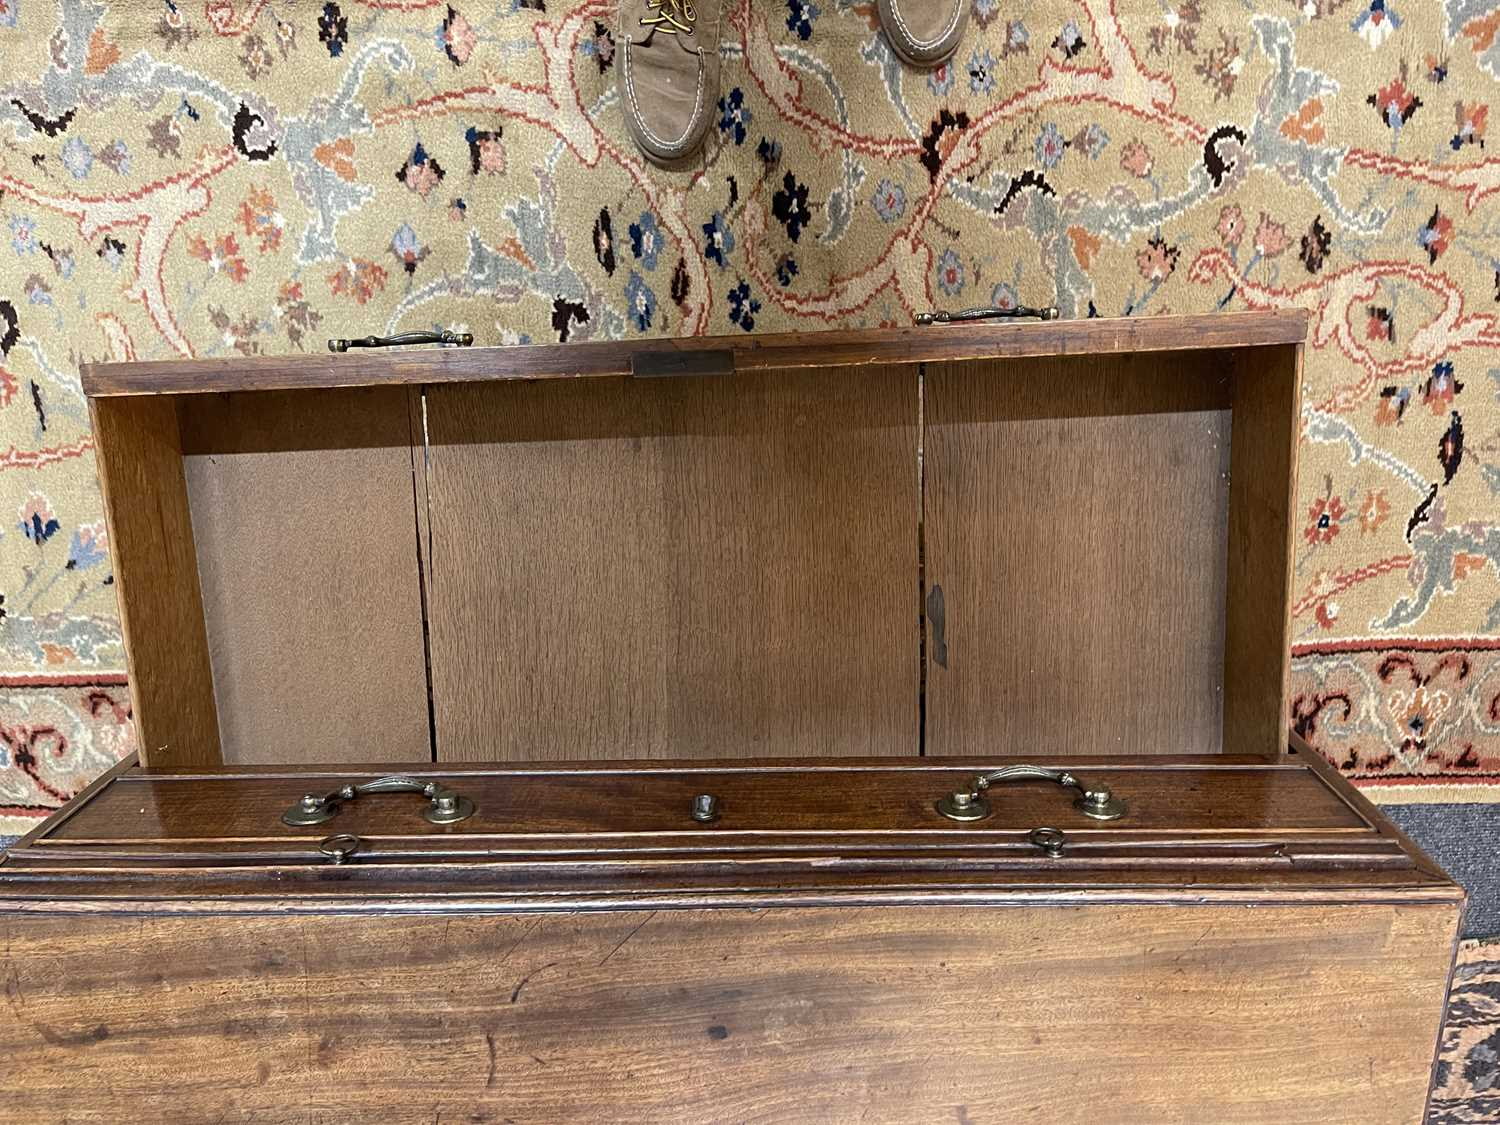 A George III mahogany caddy-top chest of drawers, - Image 20 of 48